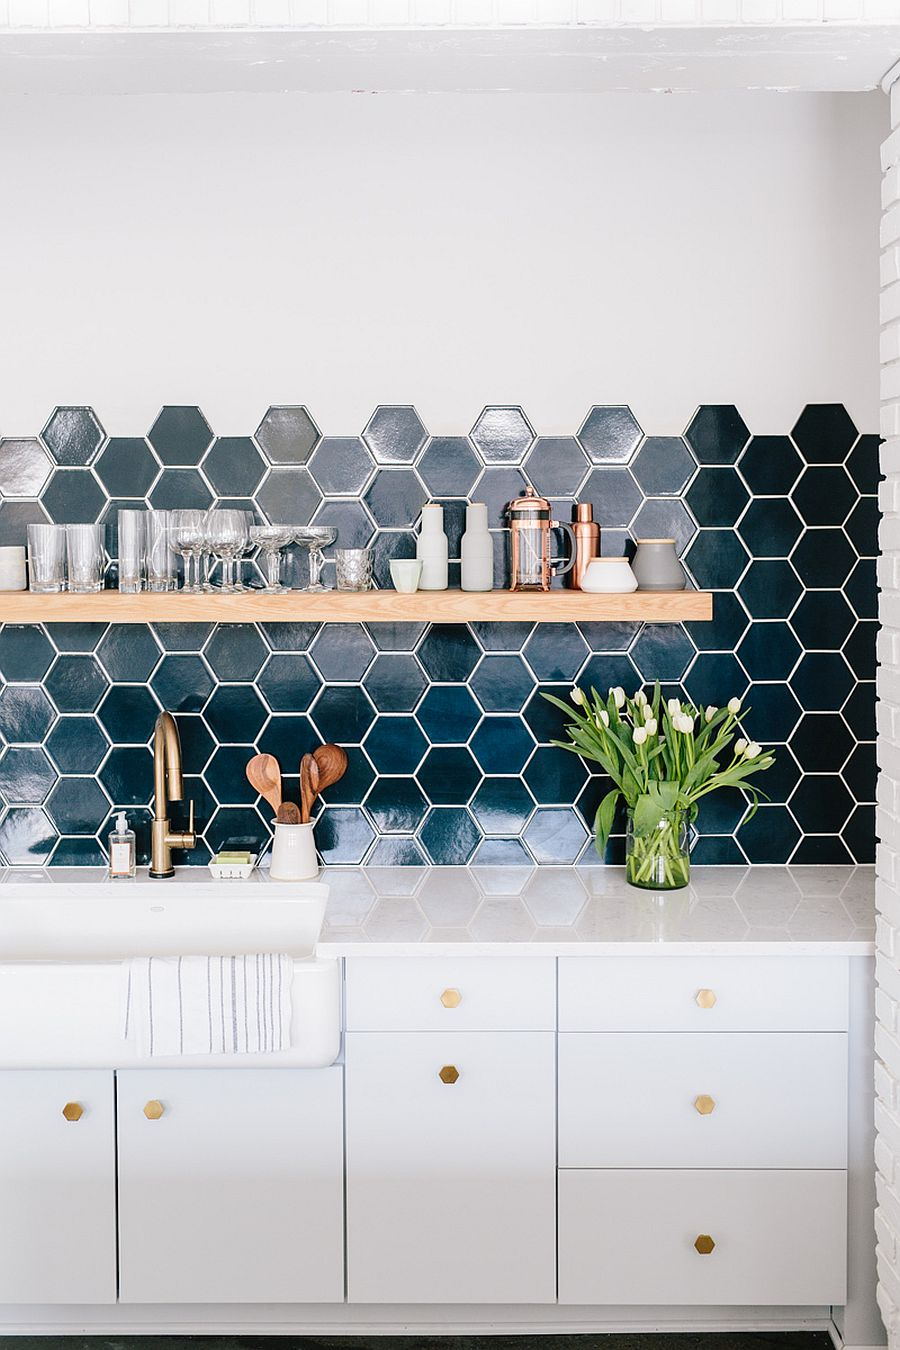 Pinterest Kitchen Tile Designs